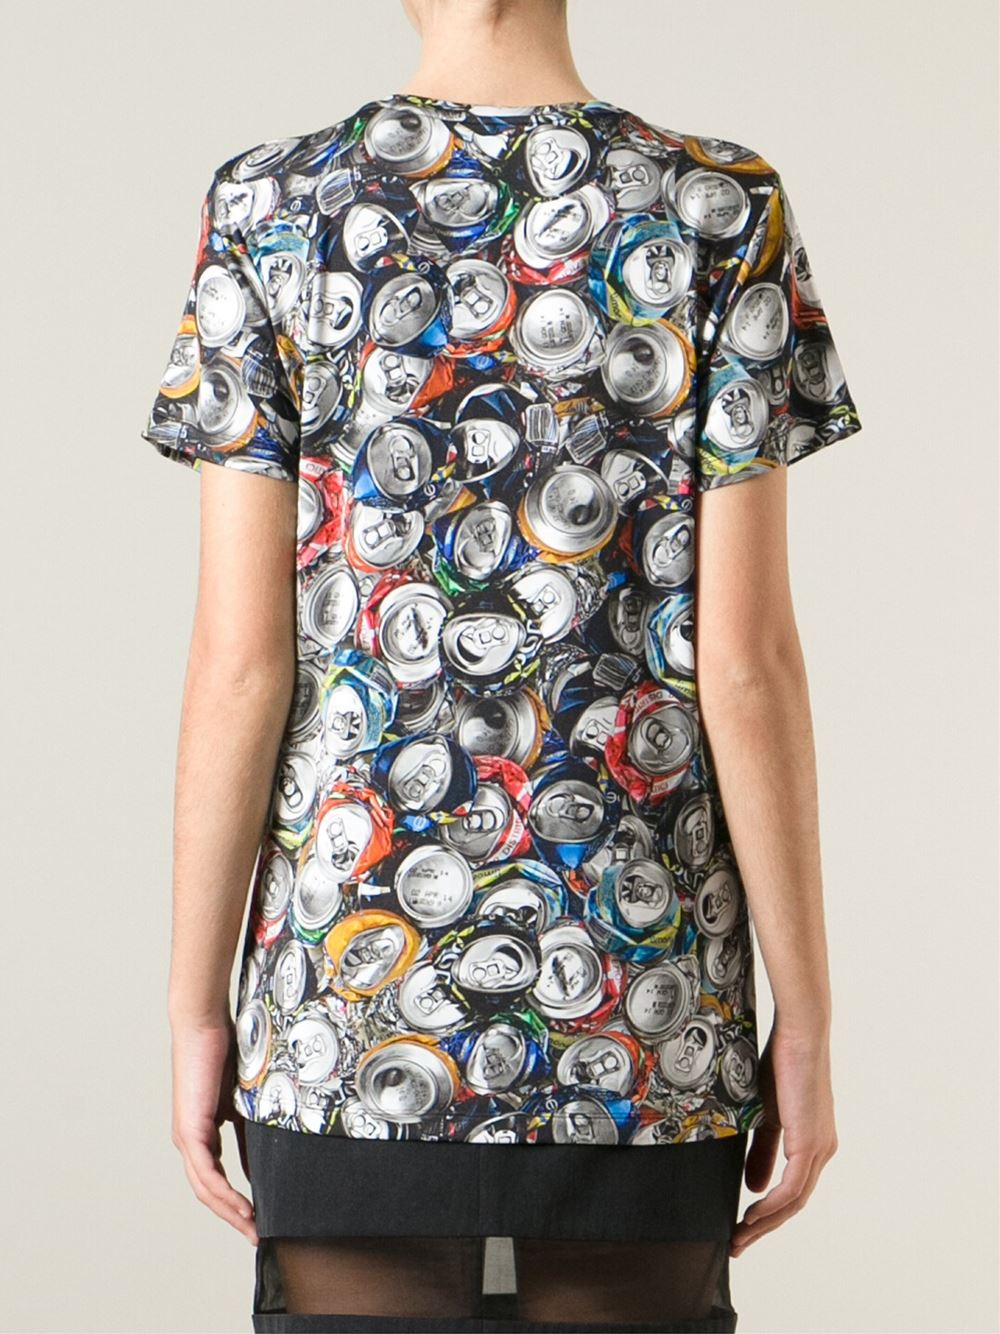 Moschino soda can print t shirt lyst for Where can i print t shirts